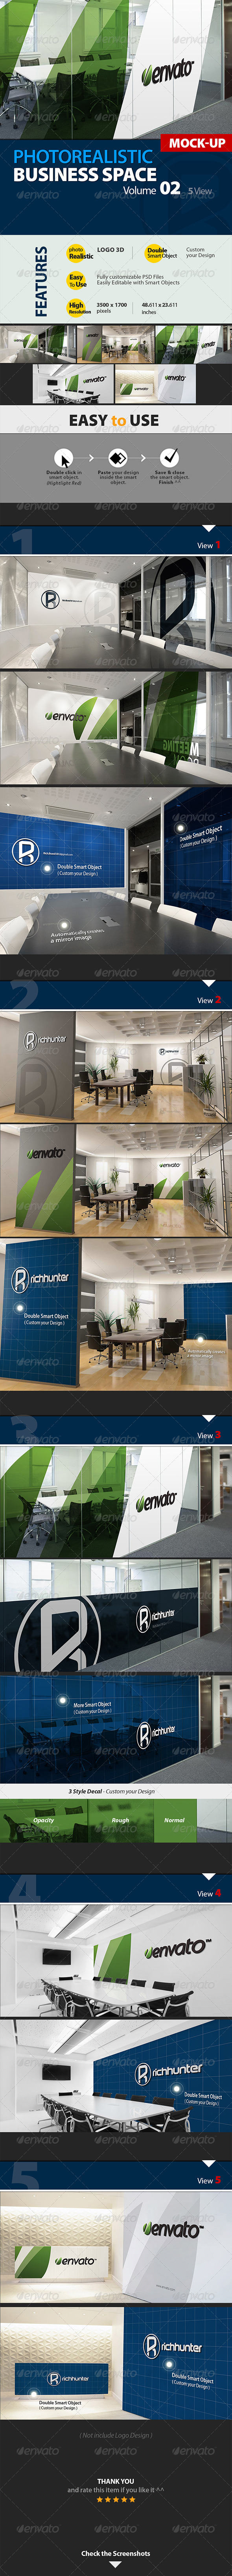 GraphicRiver Business Space Mock-up Logo 3D Vol.2 Richhunter 5266744